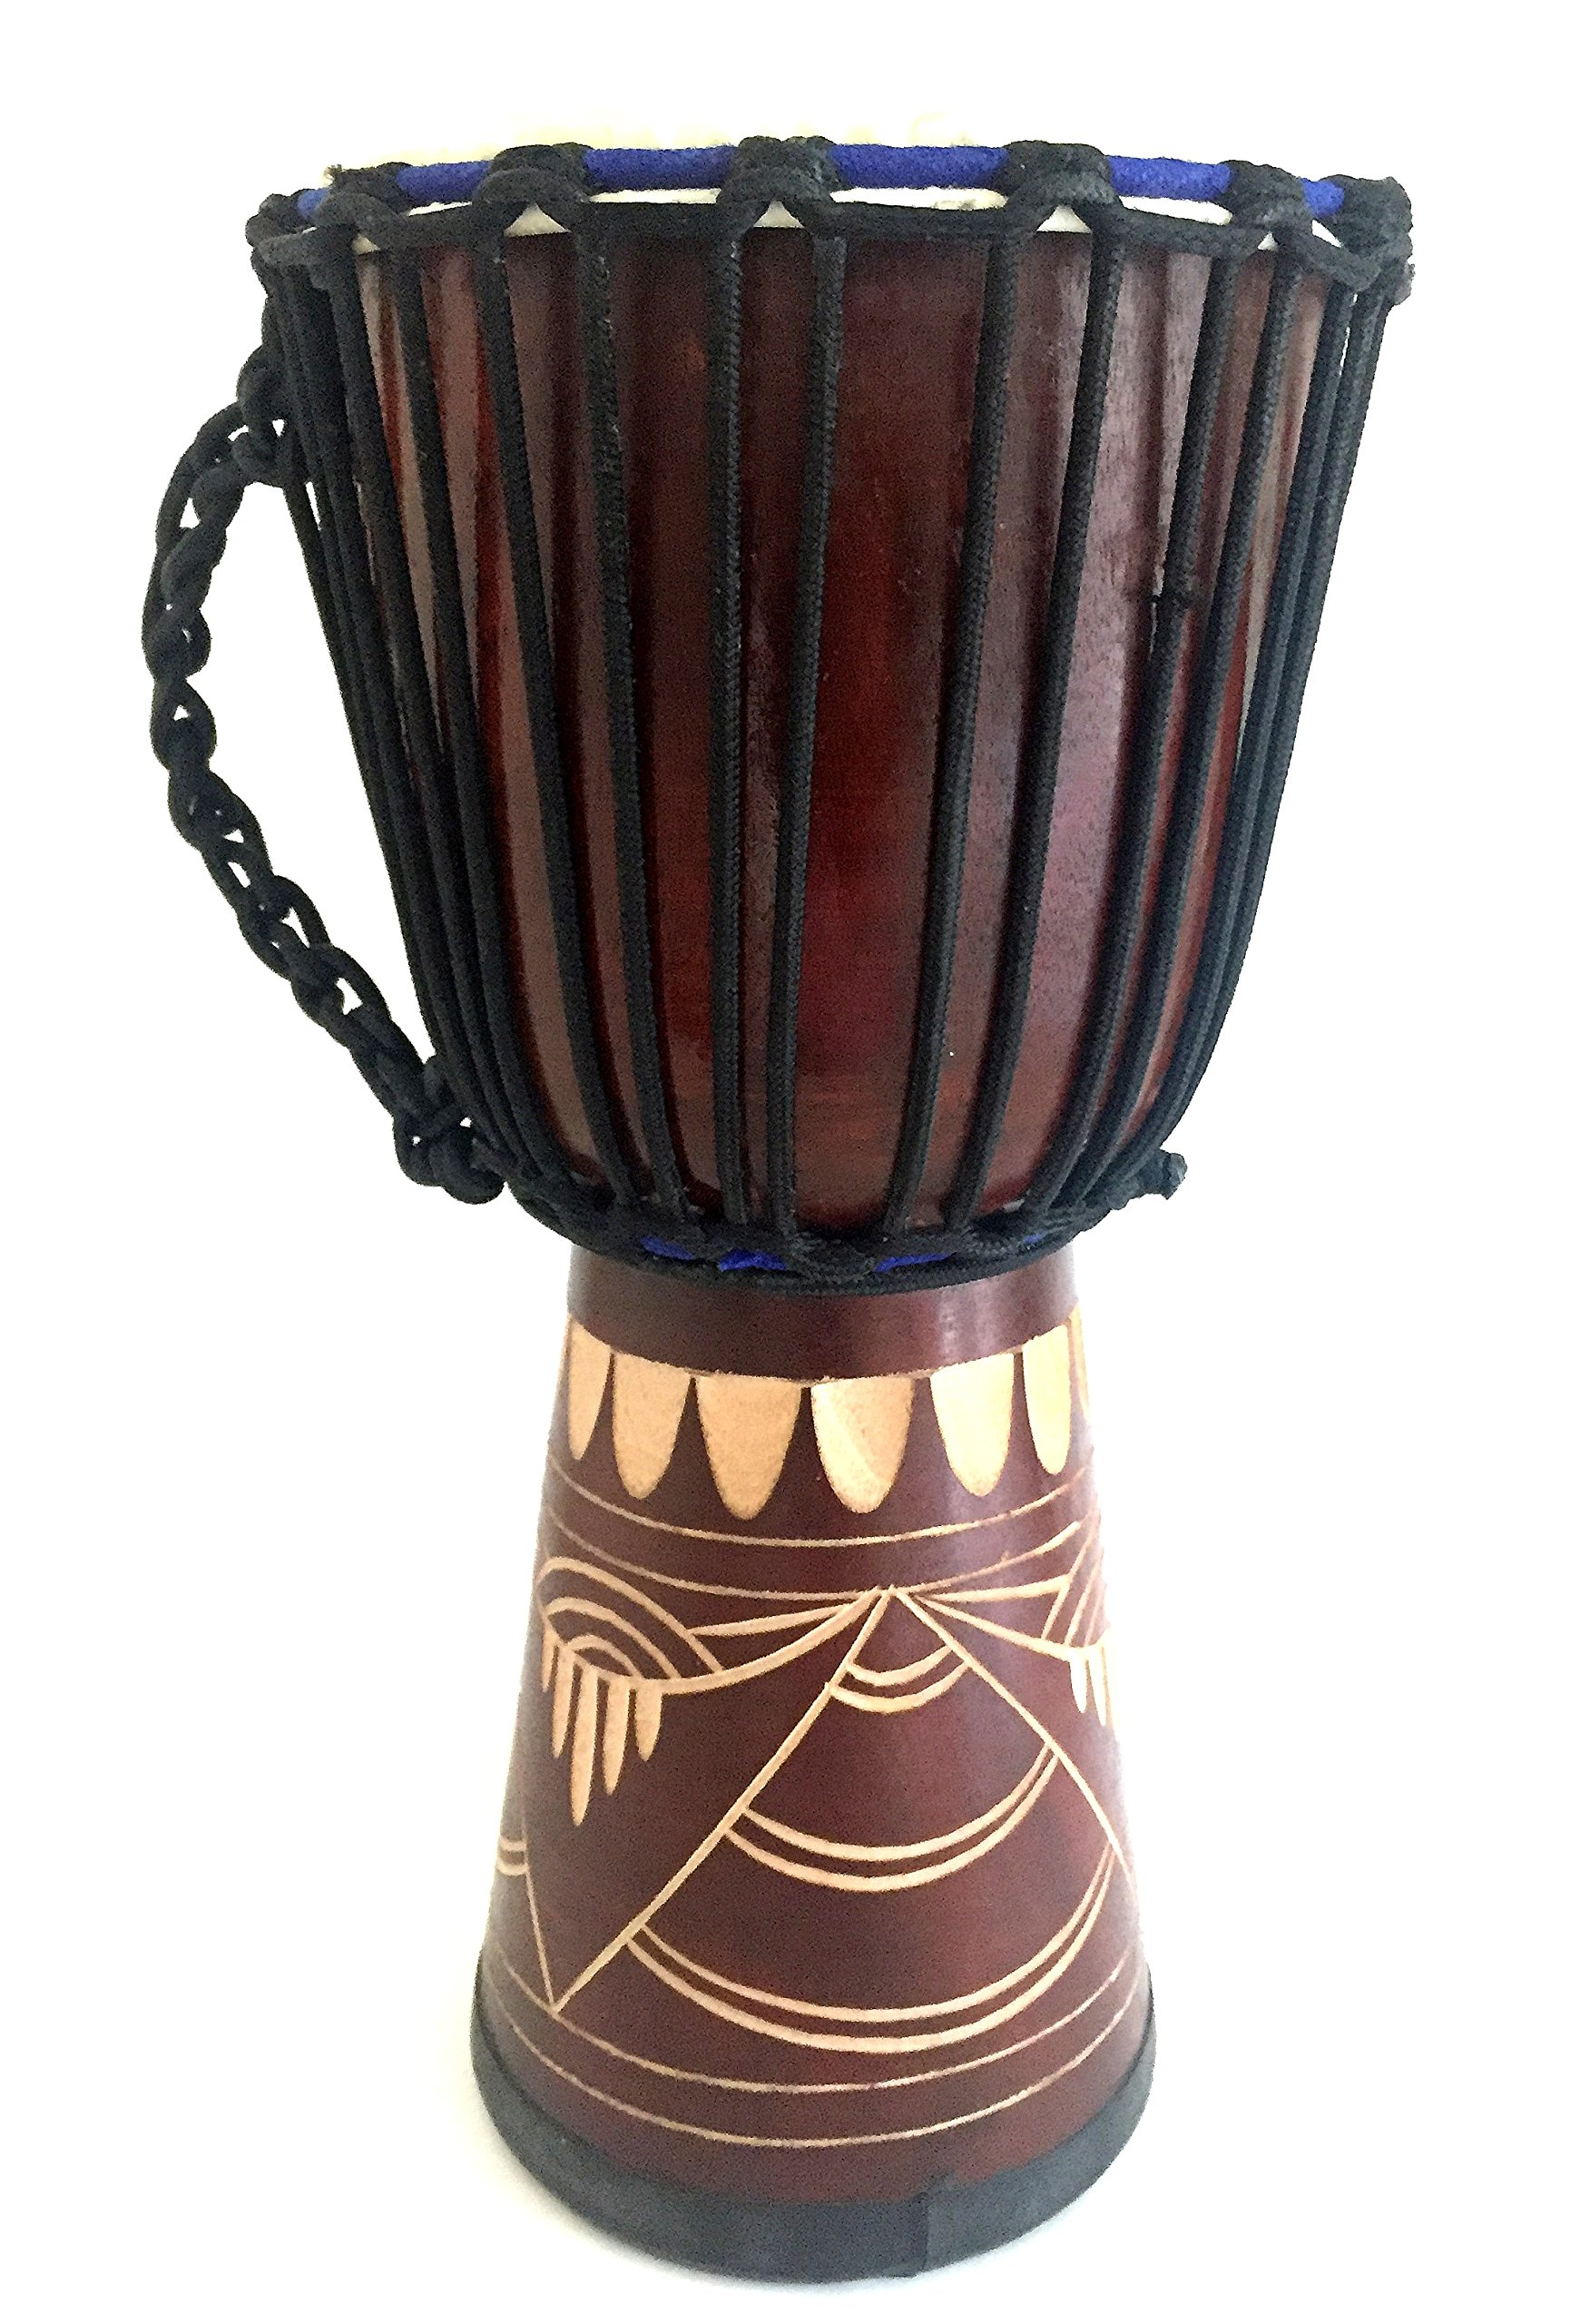 Djembe Drum Bongo Congo African Wood Drum 16'', JIVE (TM) BRAND, Professional Premium Quality With Heavy Base/Includes Drum Key Chain by Jive